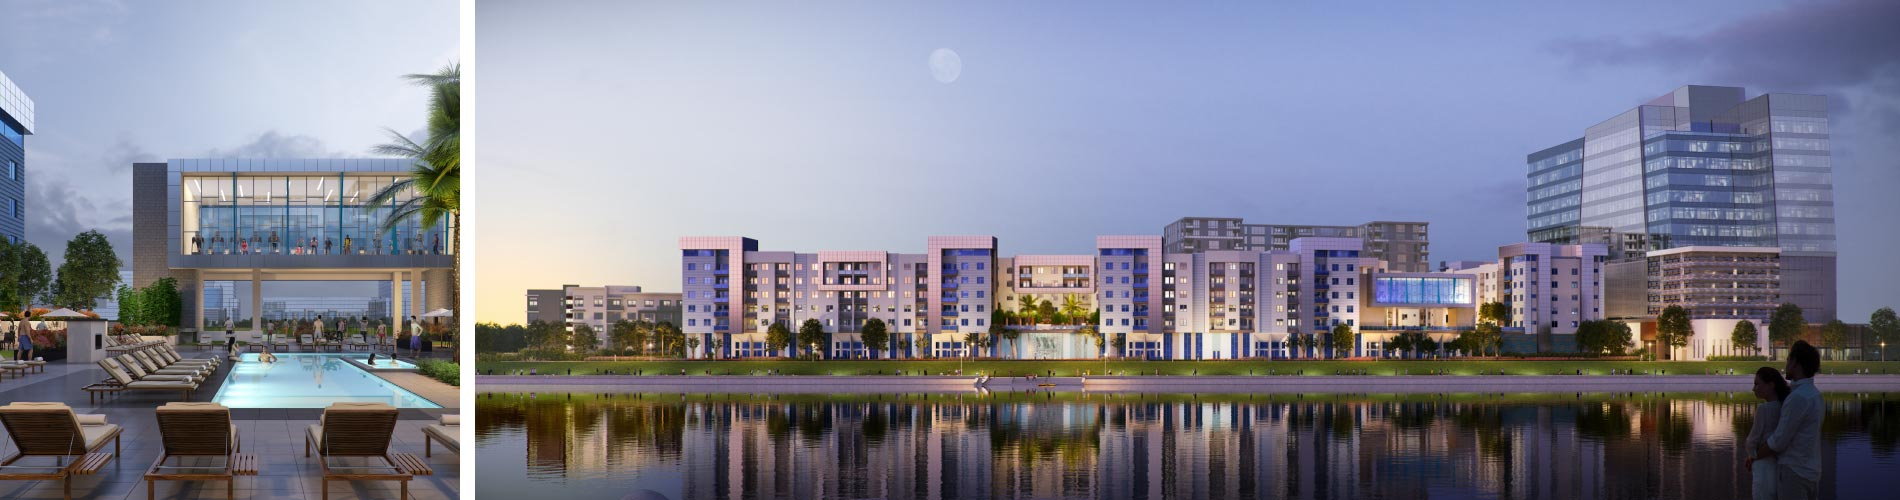 Trinsic Residential Group   Aura Watermark Apartments